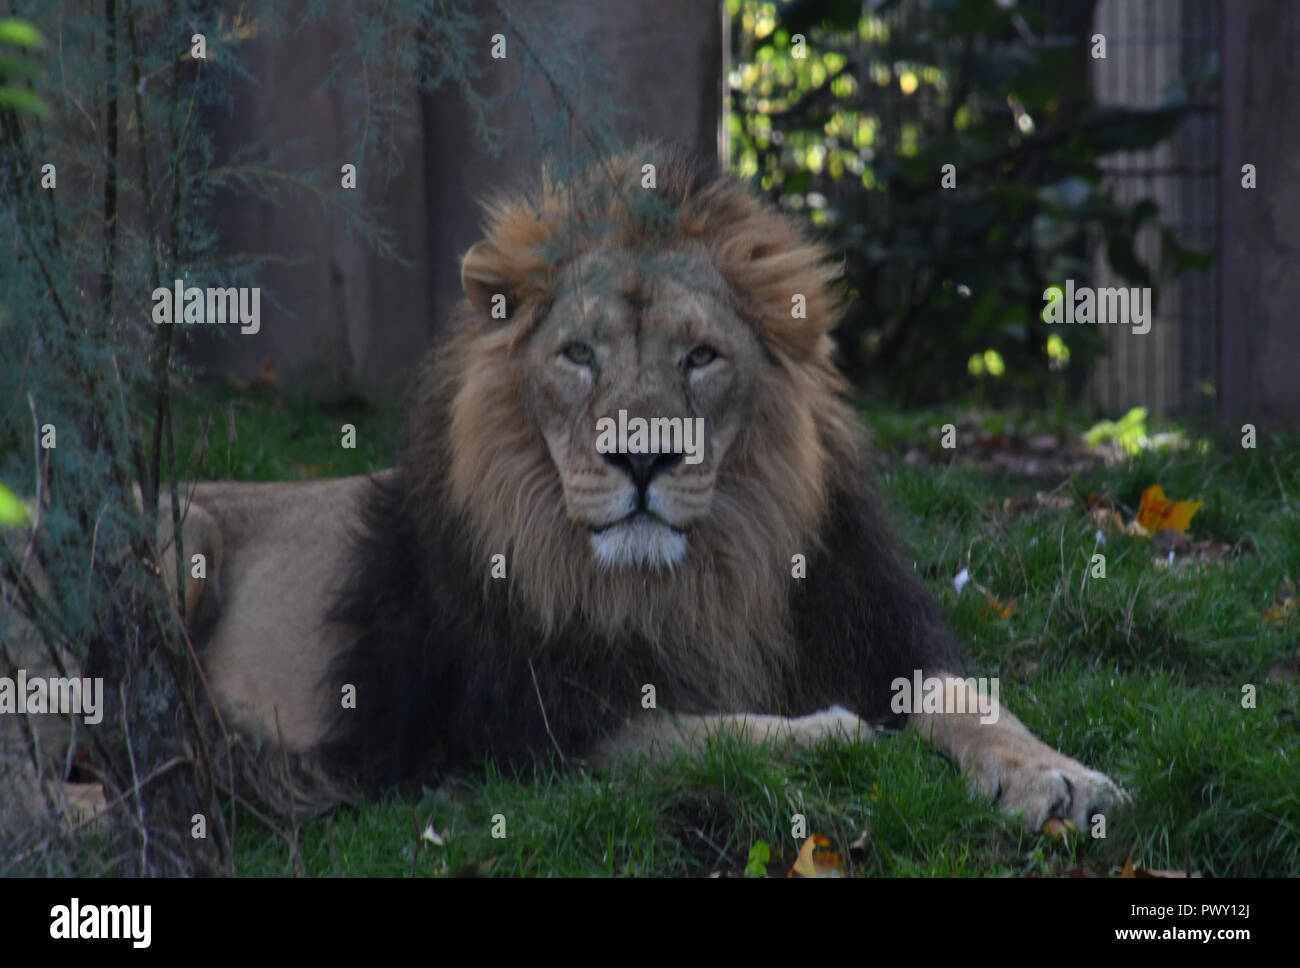 London, UK. 18th Oct 2018. ZLS London Zoo's Asiatic lions celebrate the advent of autumn with scented treat, London, UK. 18 October 2018. 18 October 2018. Credit: Picture Capital/Alamy Live News - Stock Image